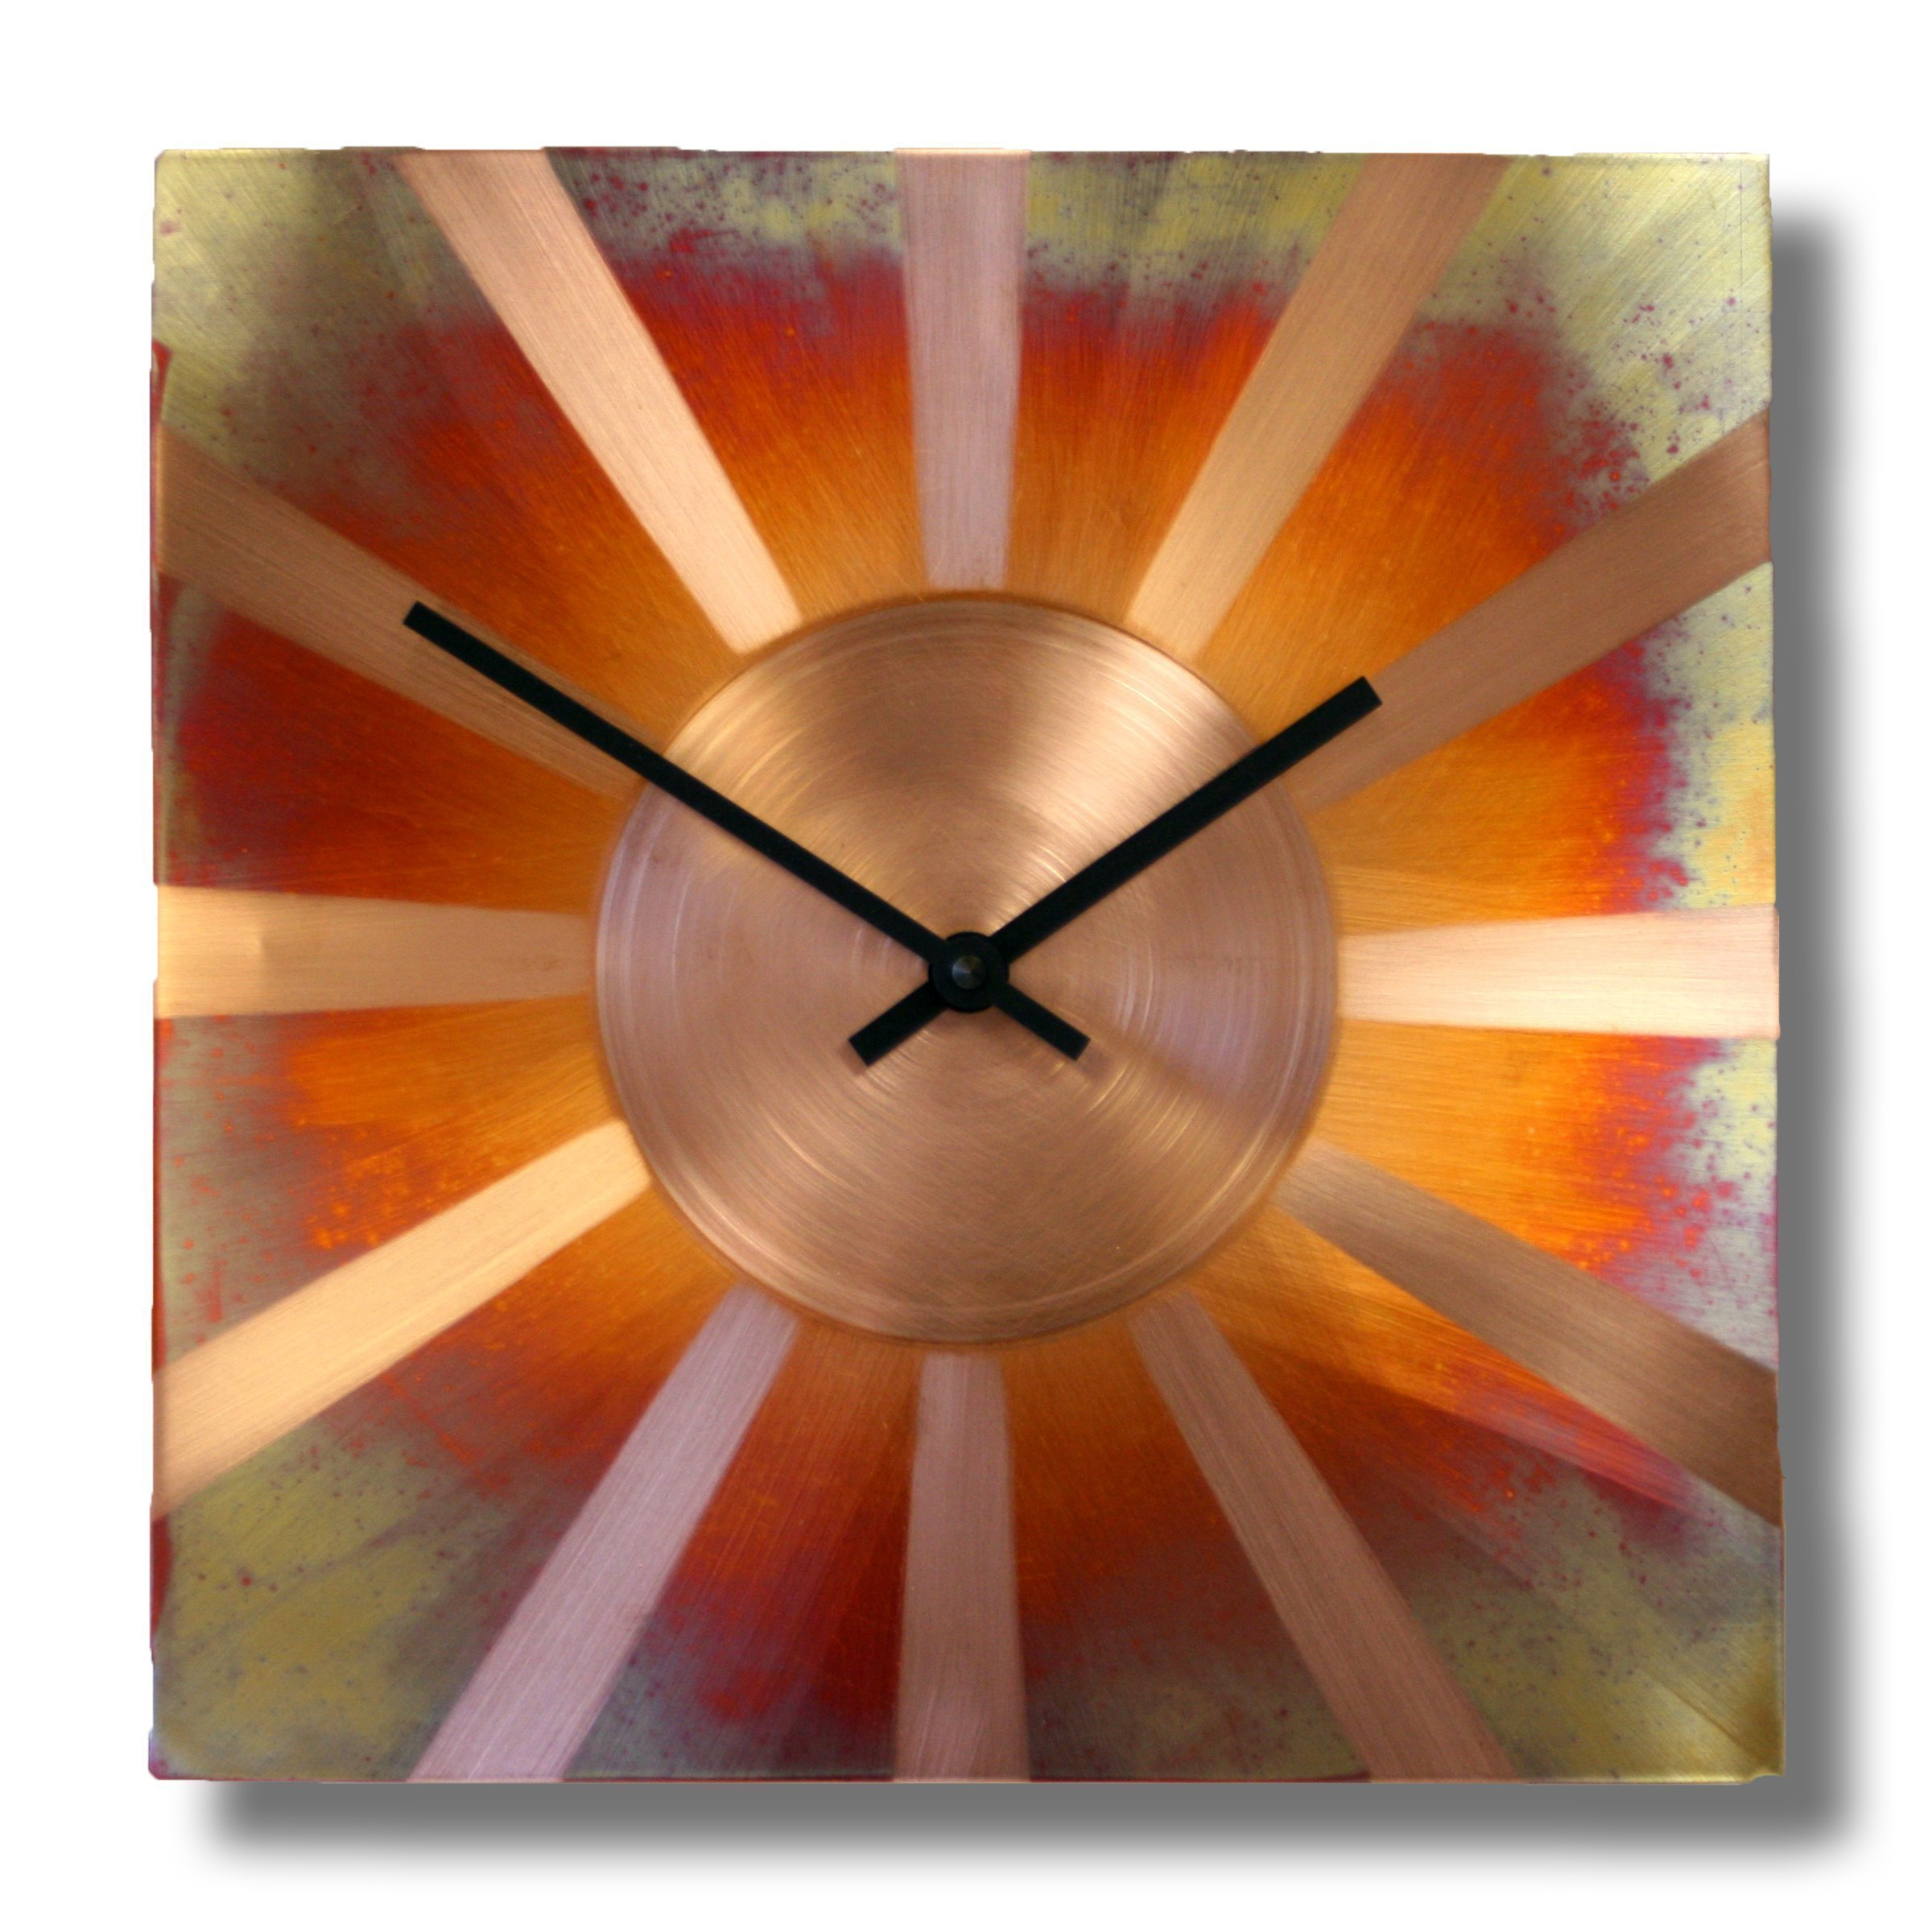 Sunny Copper Square Decorative Wall Clock 12-inch Silent Non Ticking for Home / Office / Kitchen / Bedroom / Living Room